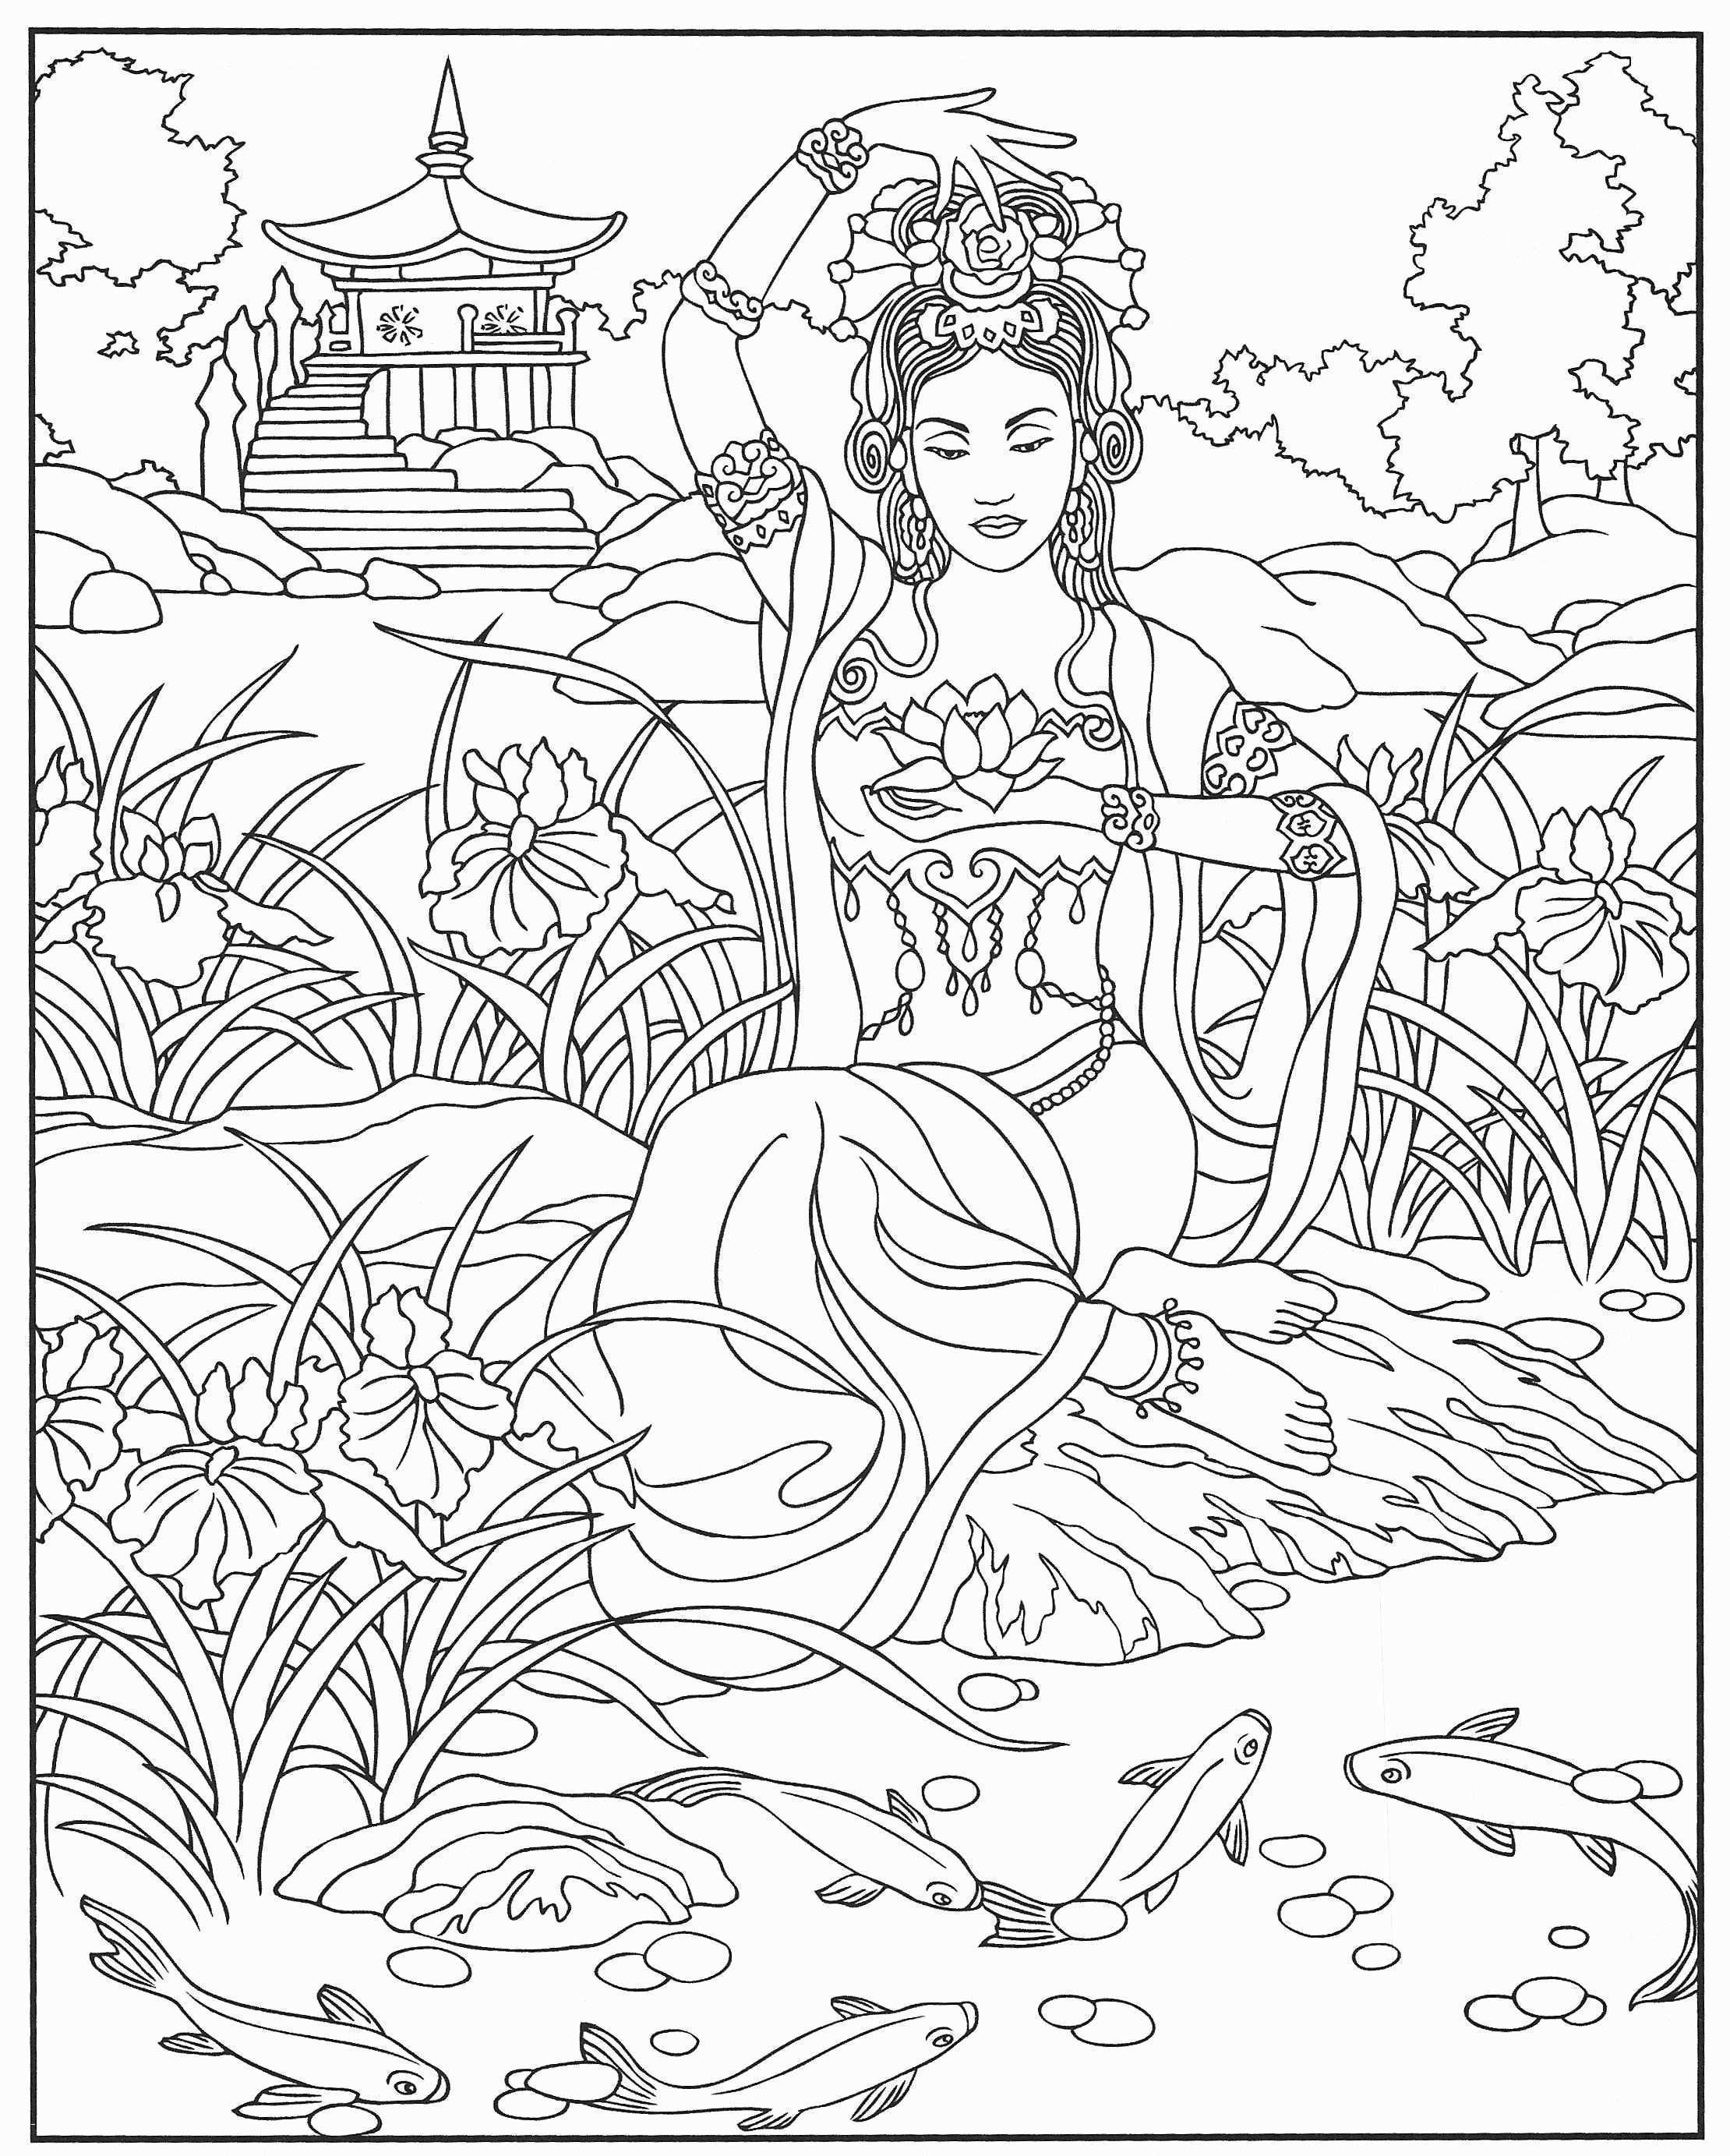 Christmas Coloring Pages Heathermarxgallery – Free Coloring Sheets